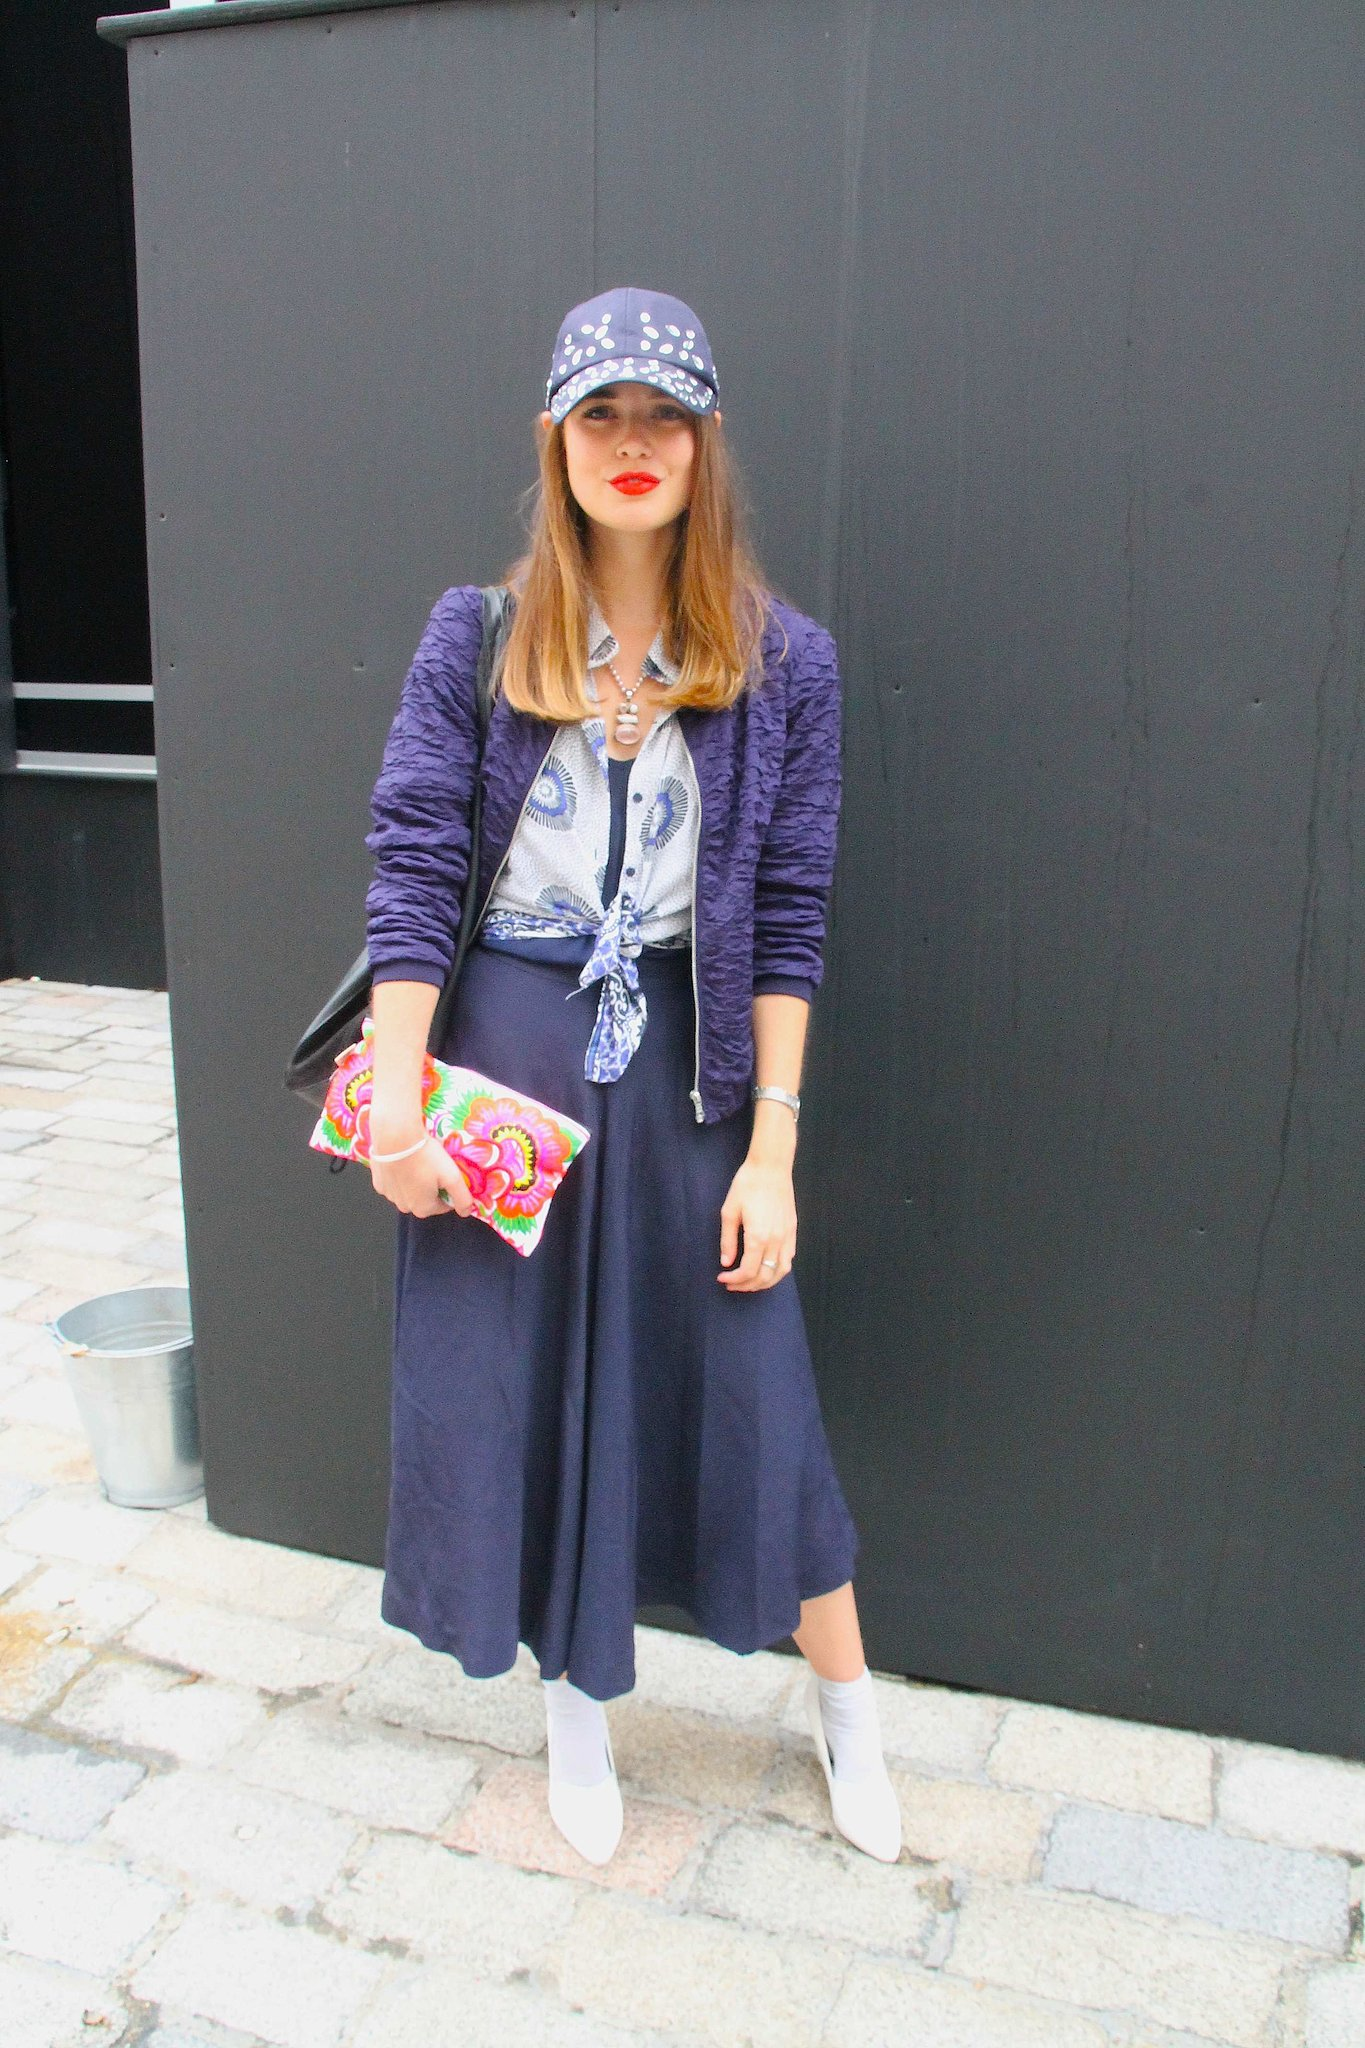 Sporty and sweet with a baseball cap, red lip, and pumps and socks. Source: Hannah Freeman